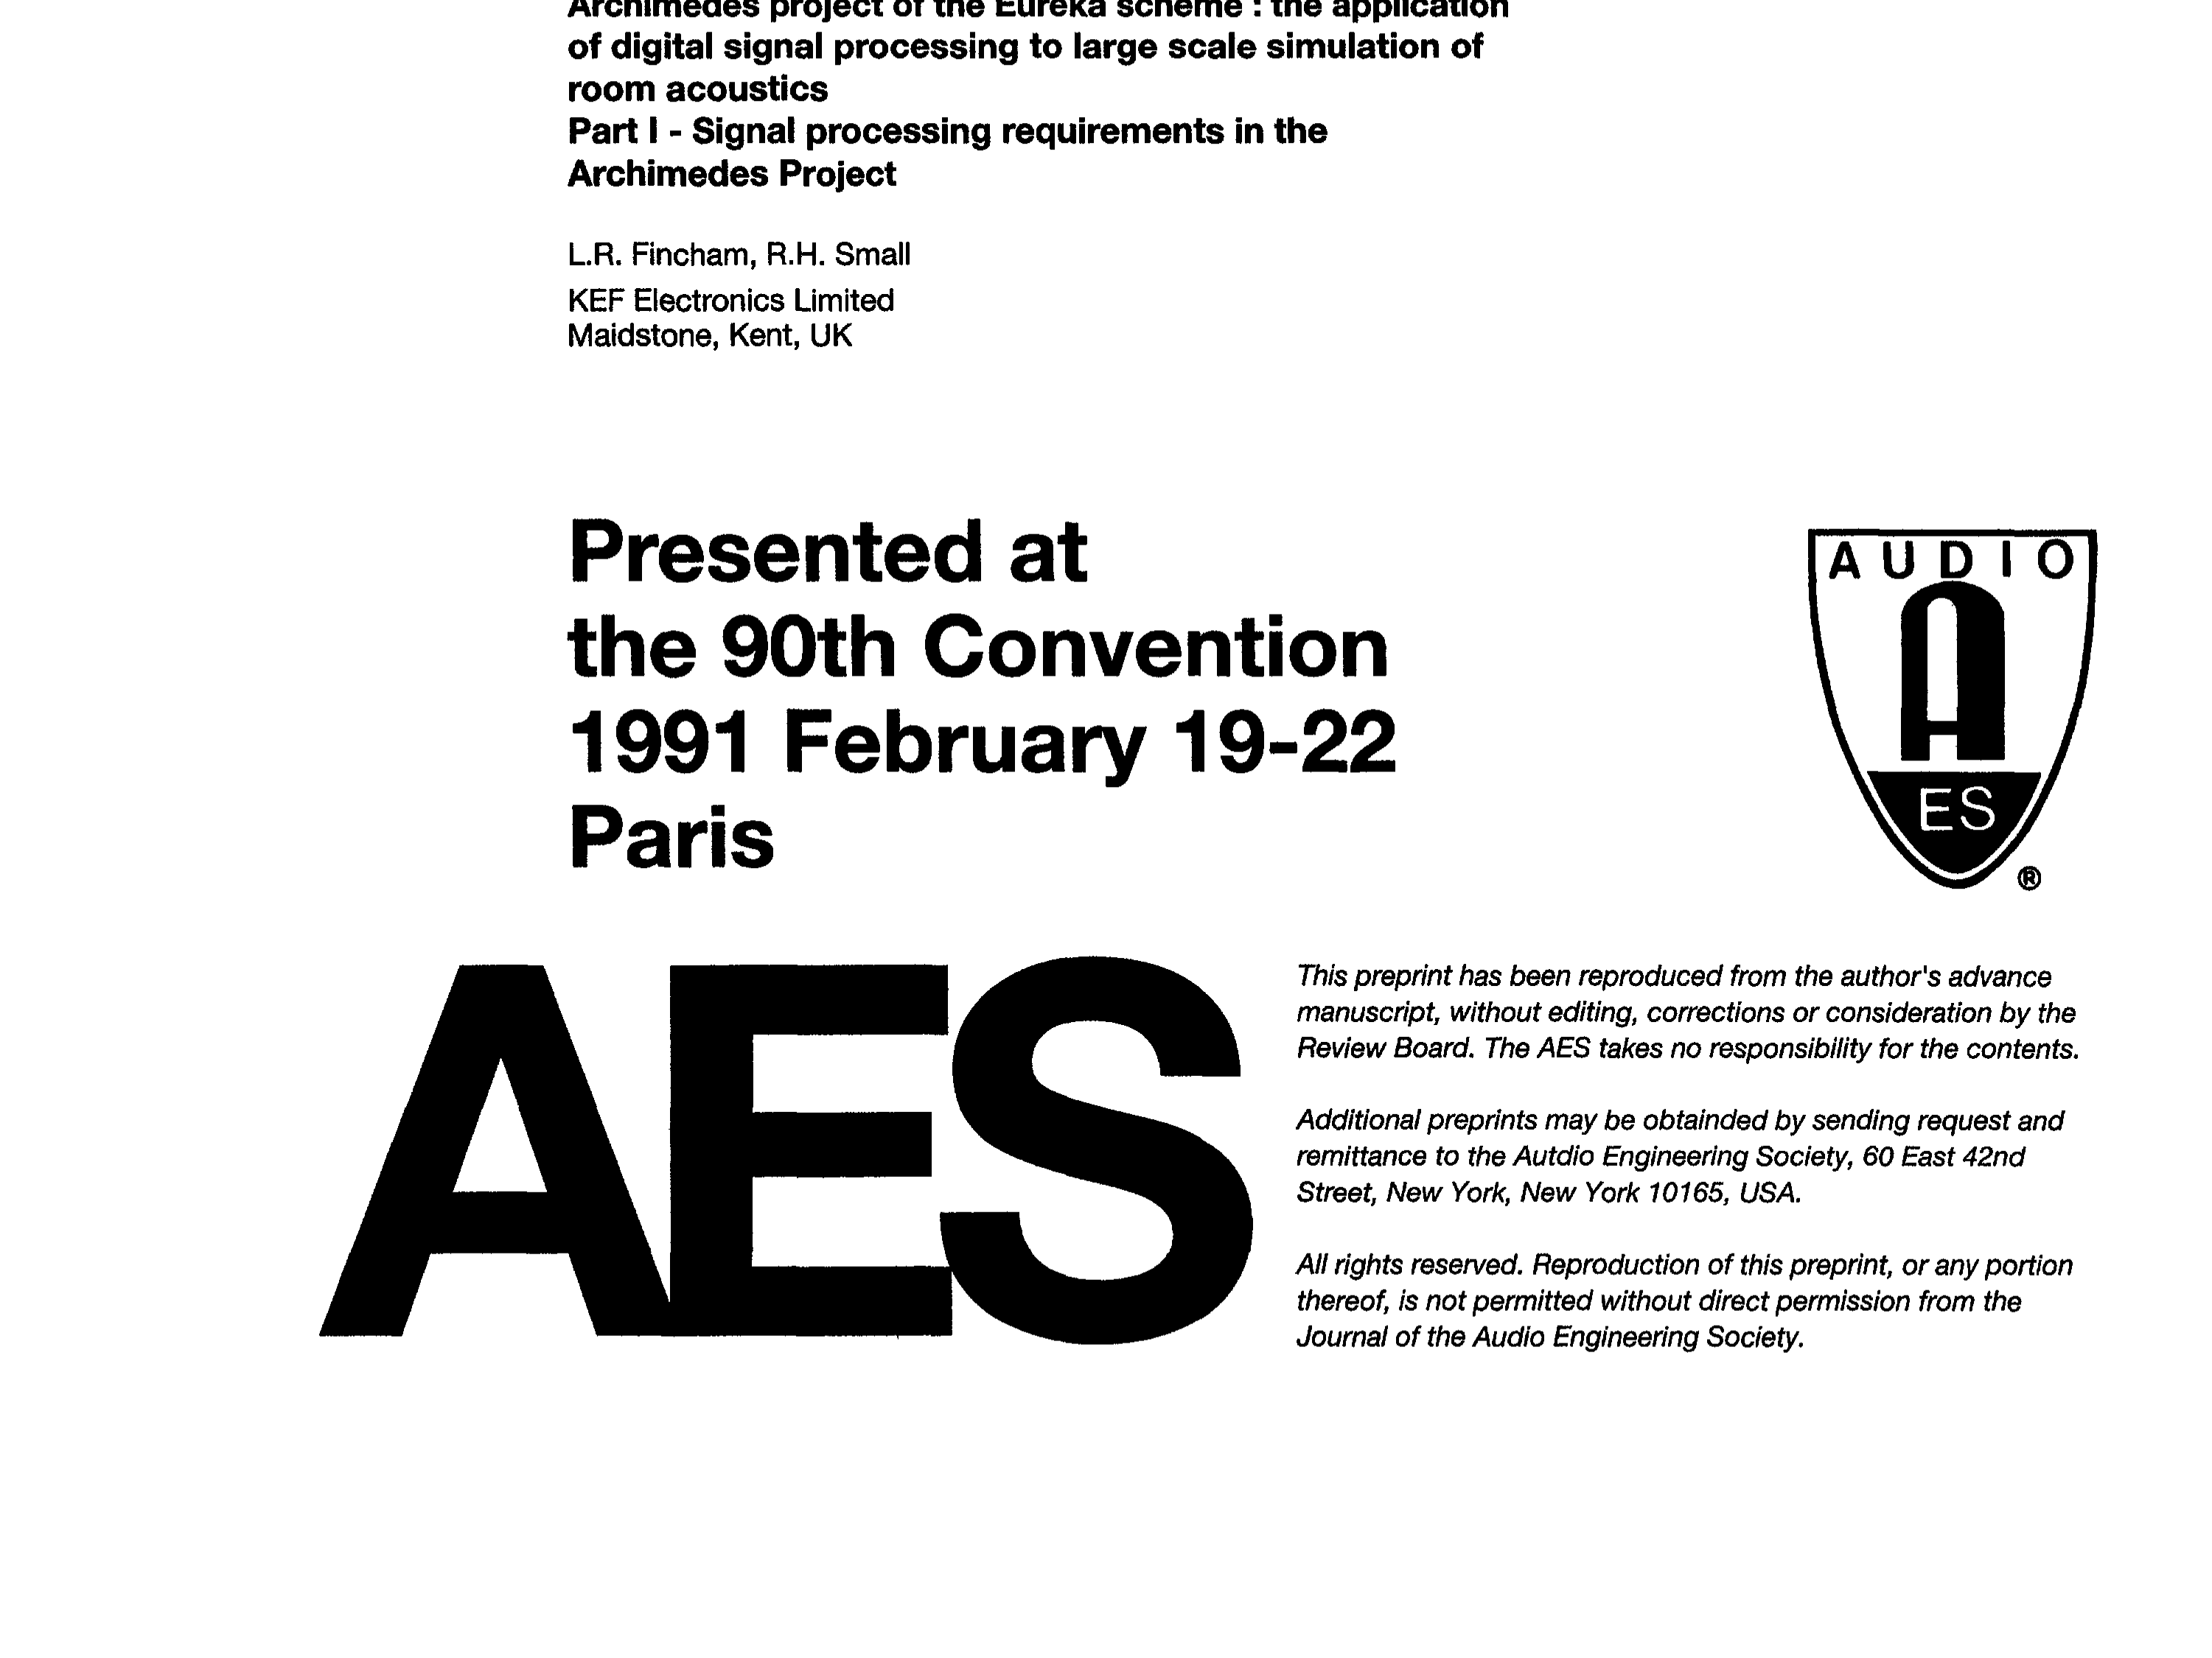 AES E-Library » The Application of Digital Signal Processing